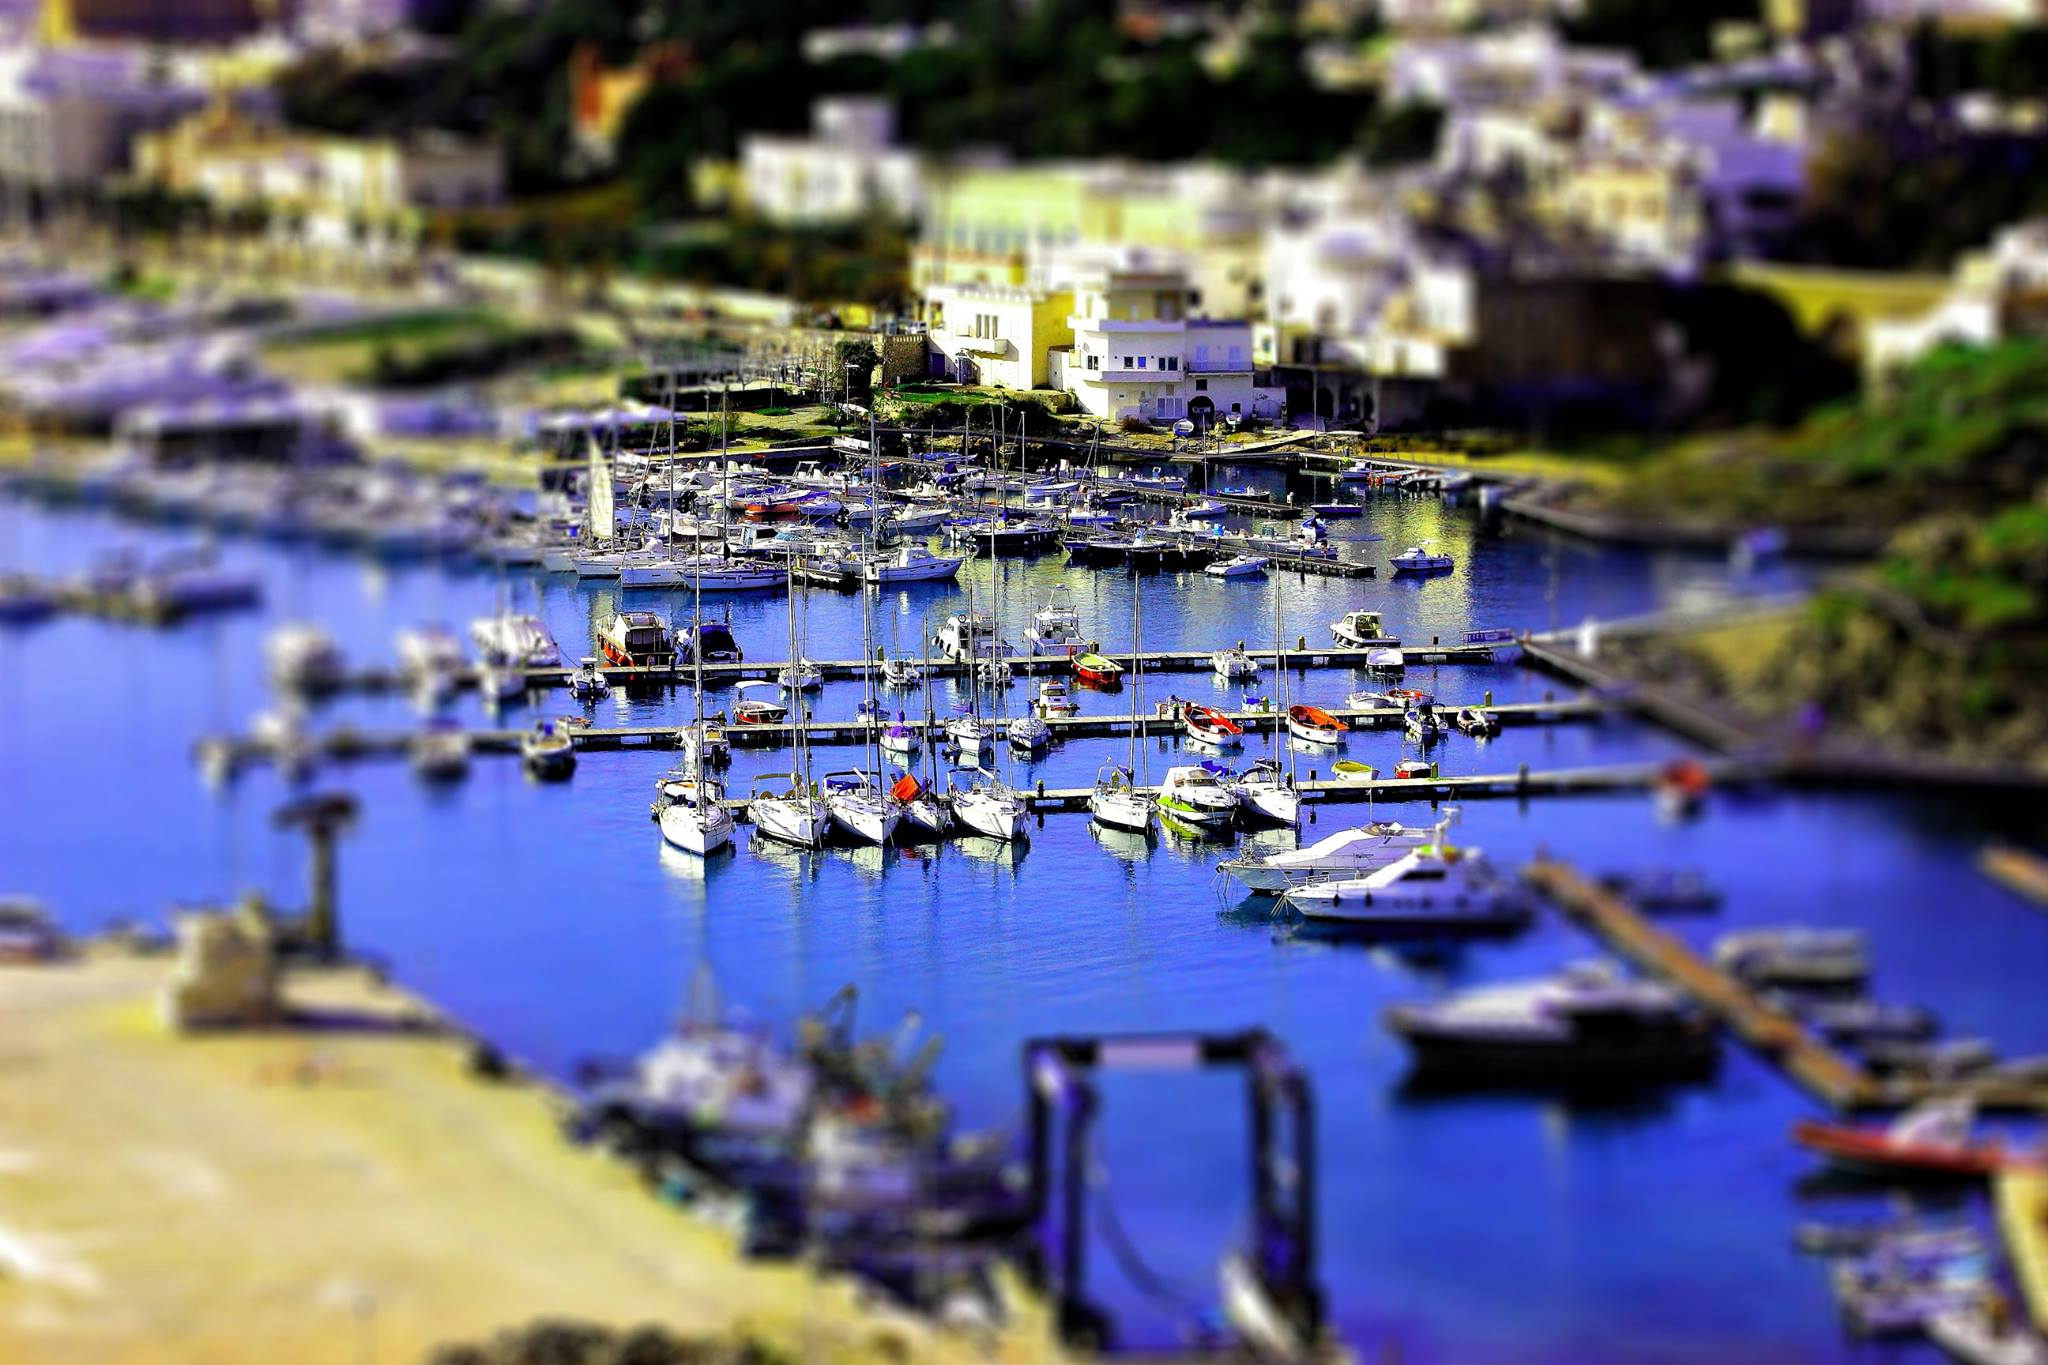 Port of santa maria di Leuca...